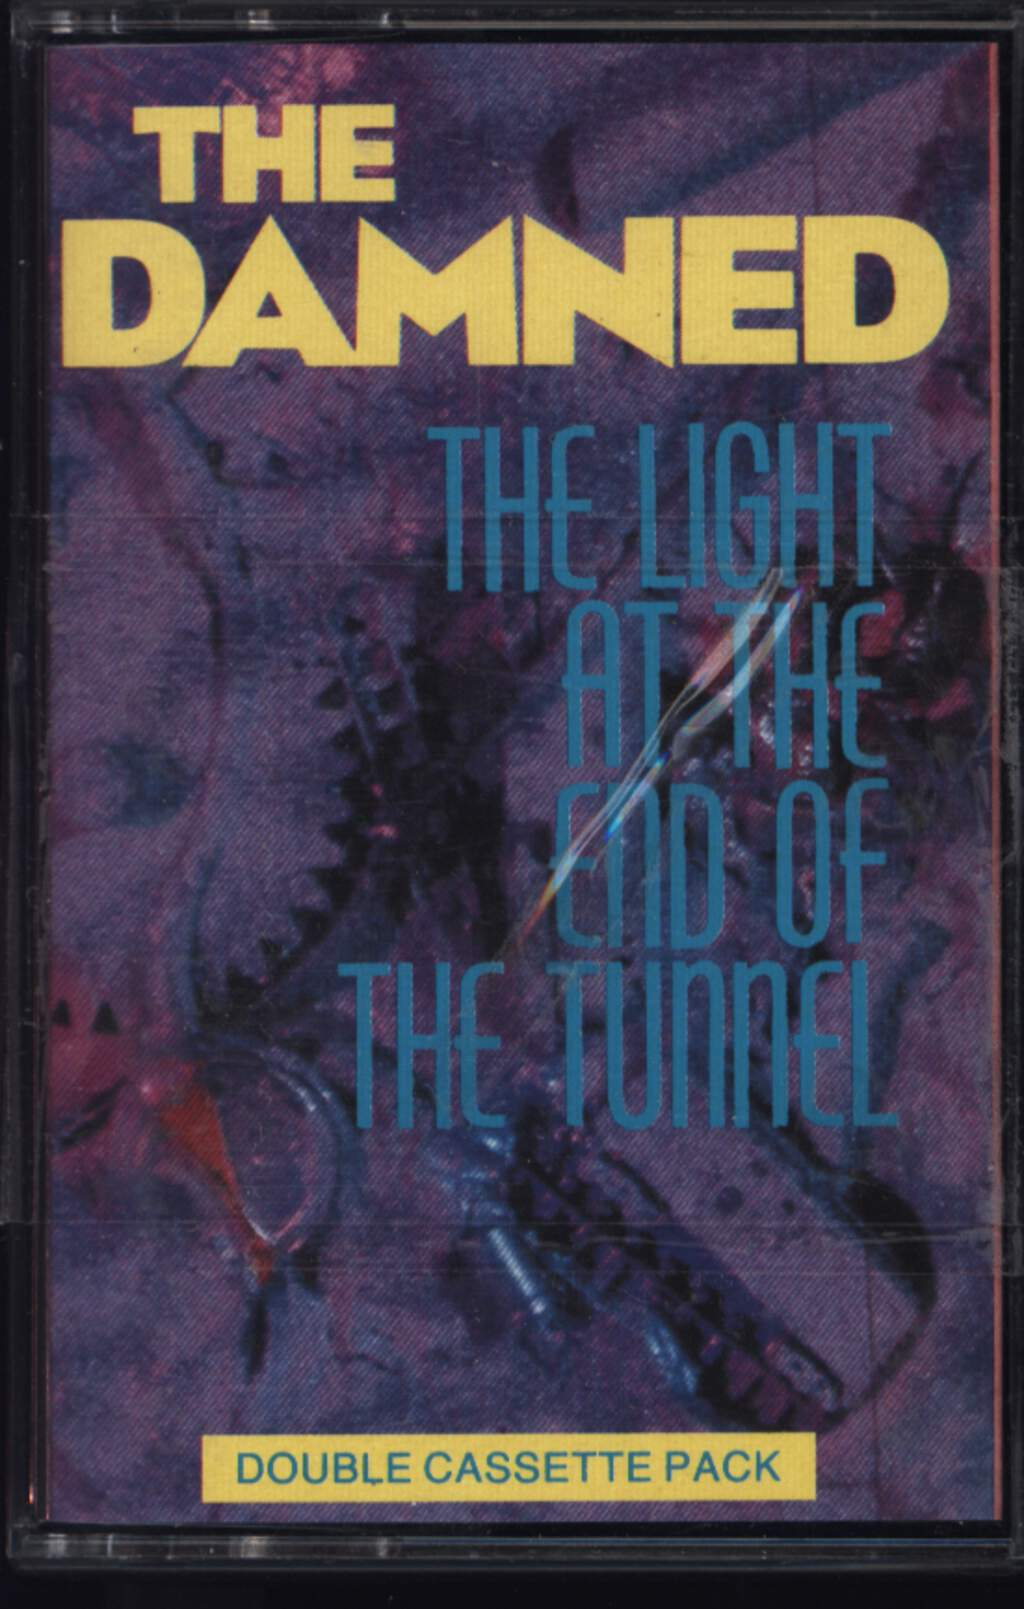 The Damned: The Light At The End Of The Tunnel, Compact Cassette